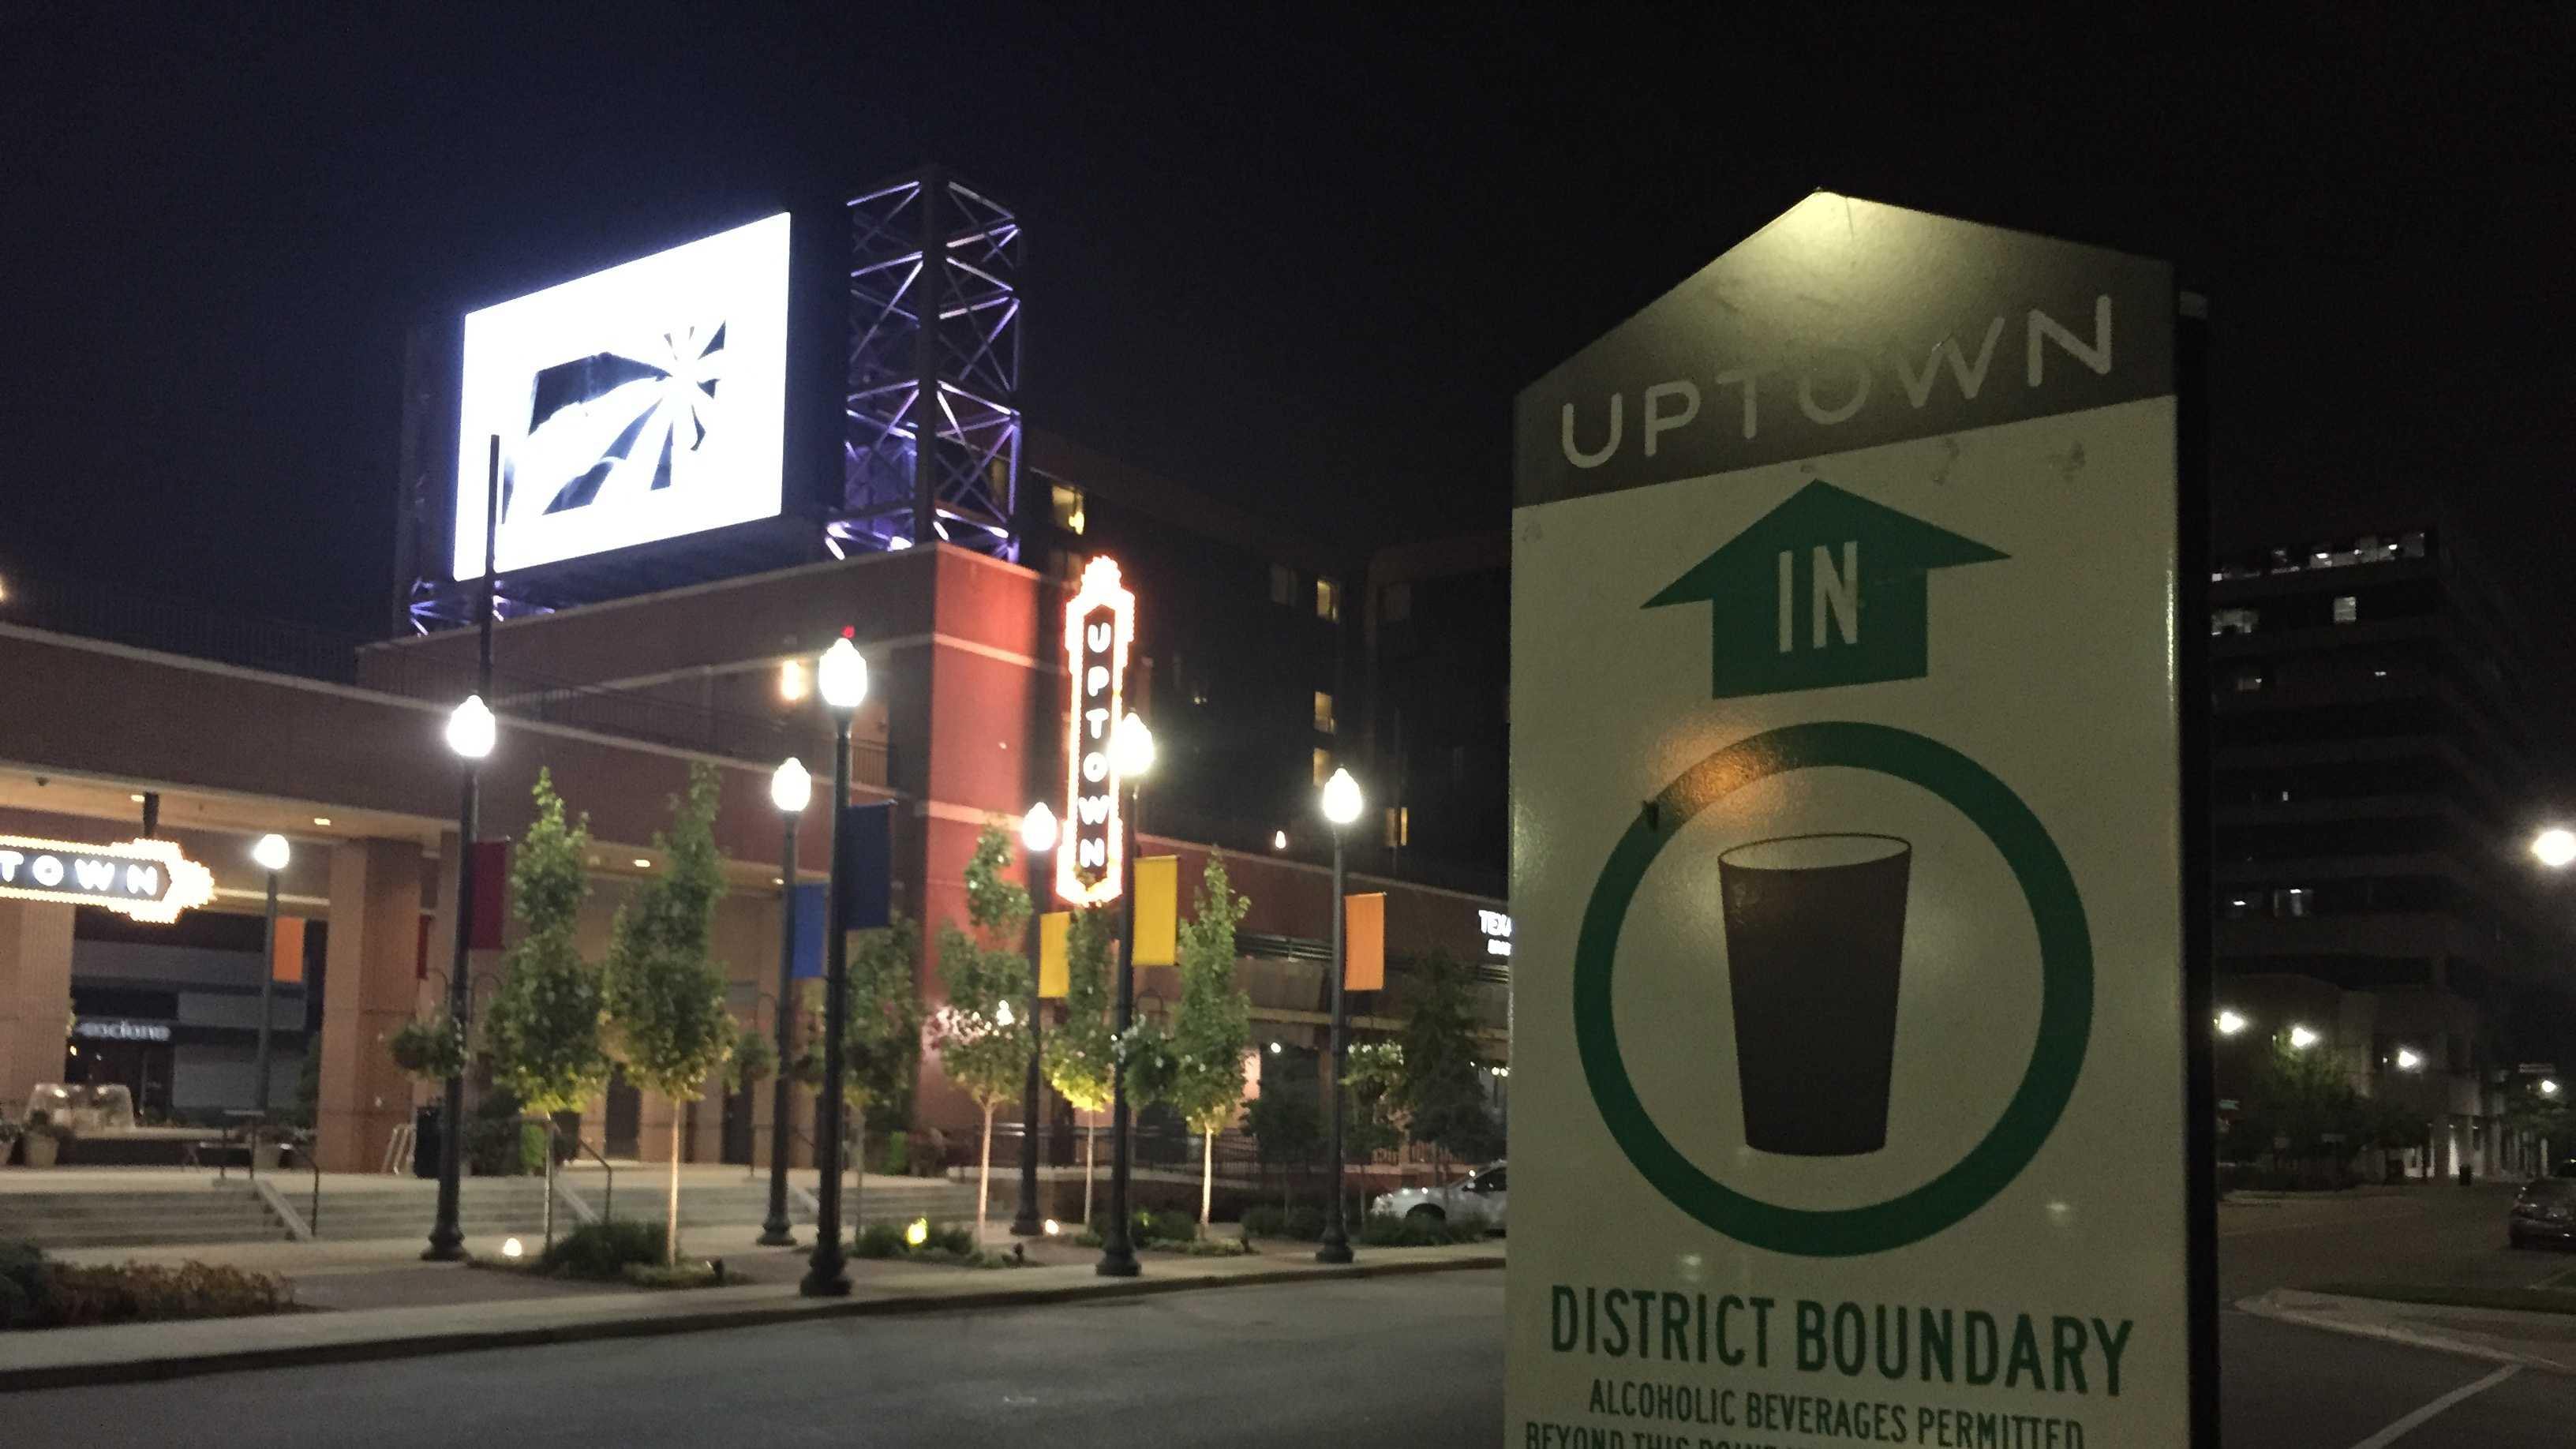 Beginning Thursday, the Uptown Entertainment District, BJCC, Sheraton and Westin Hotels in Birmingham will now allow patrons to walk around with open containers of alcohol.